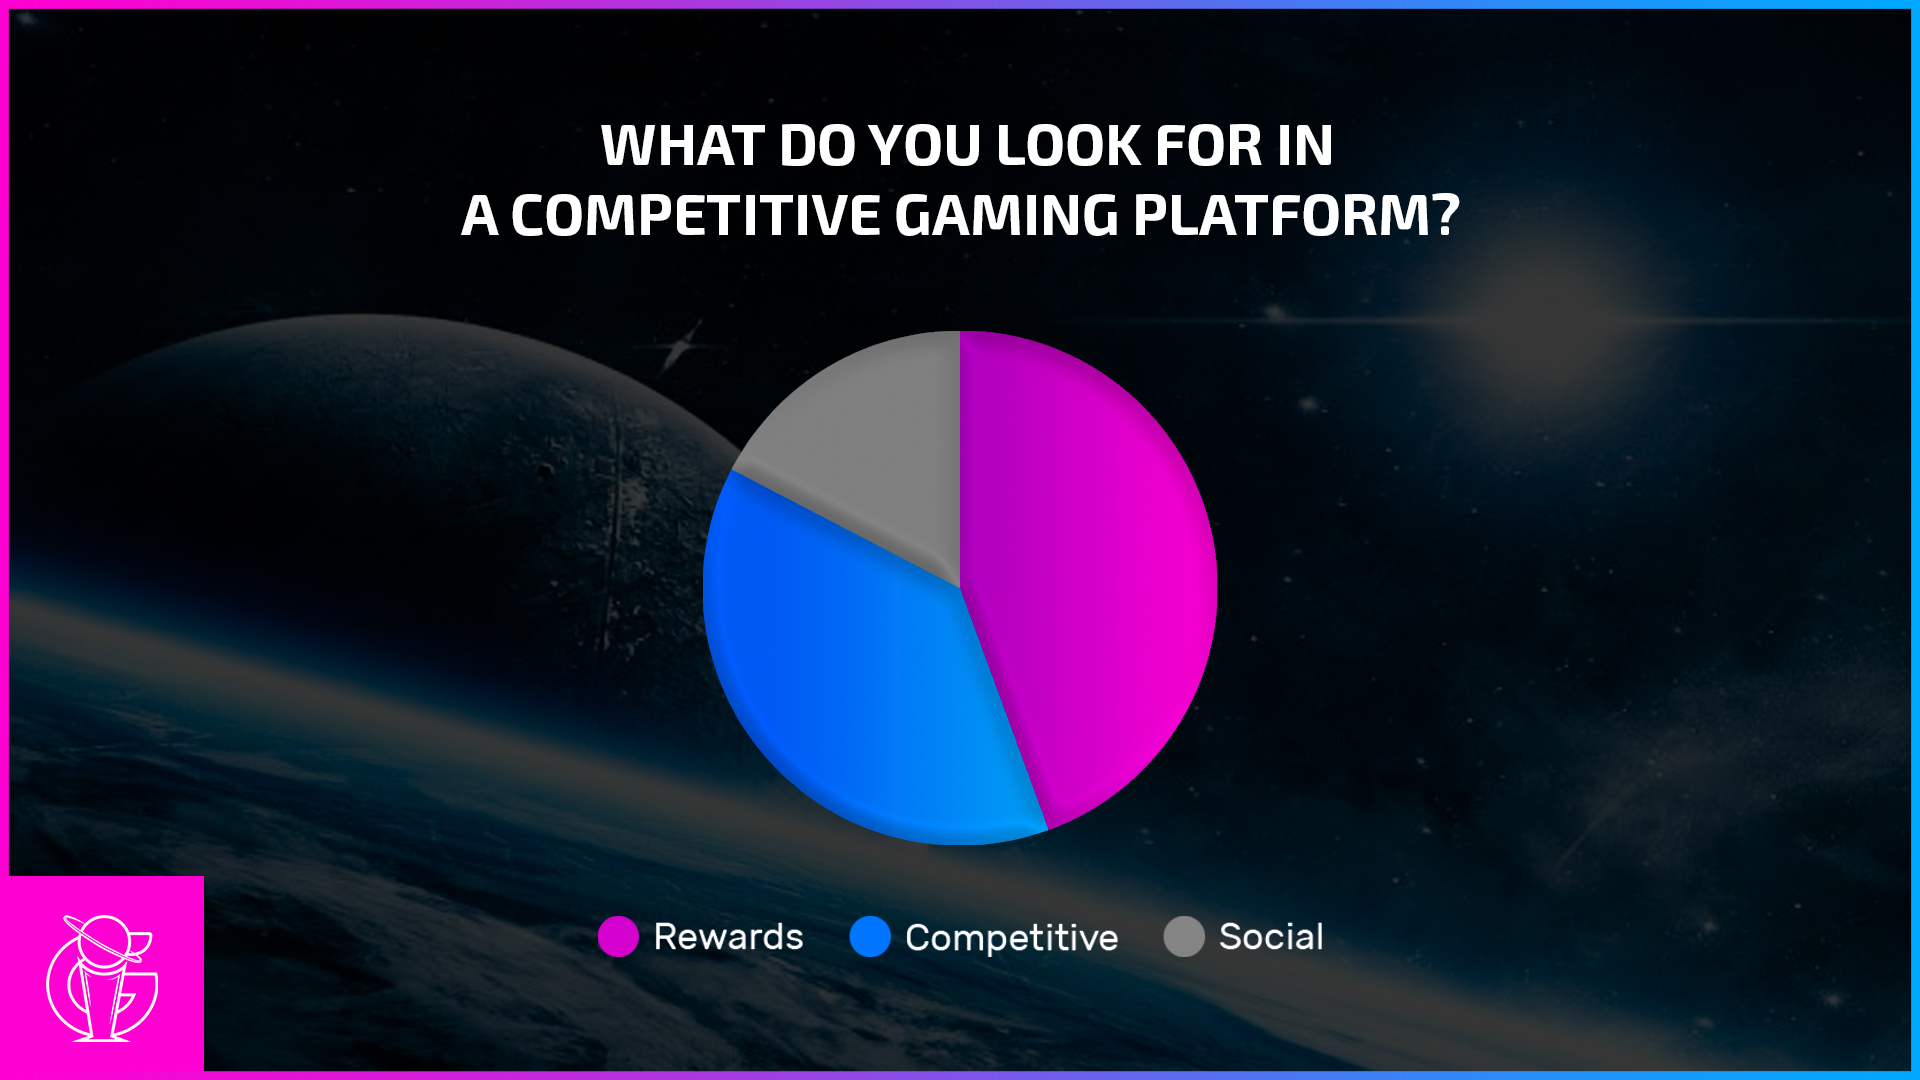 We asked our competitive gamers in IGGalaxy what they looked for in a competitive gaming platform.